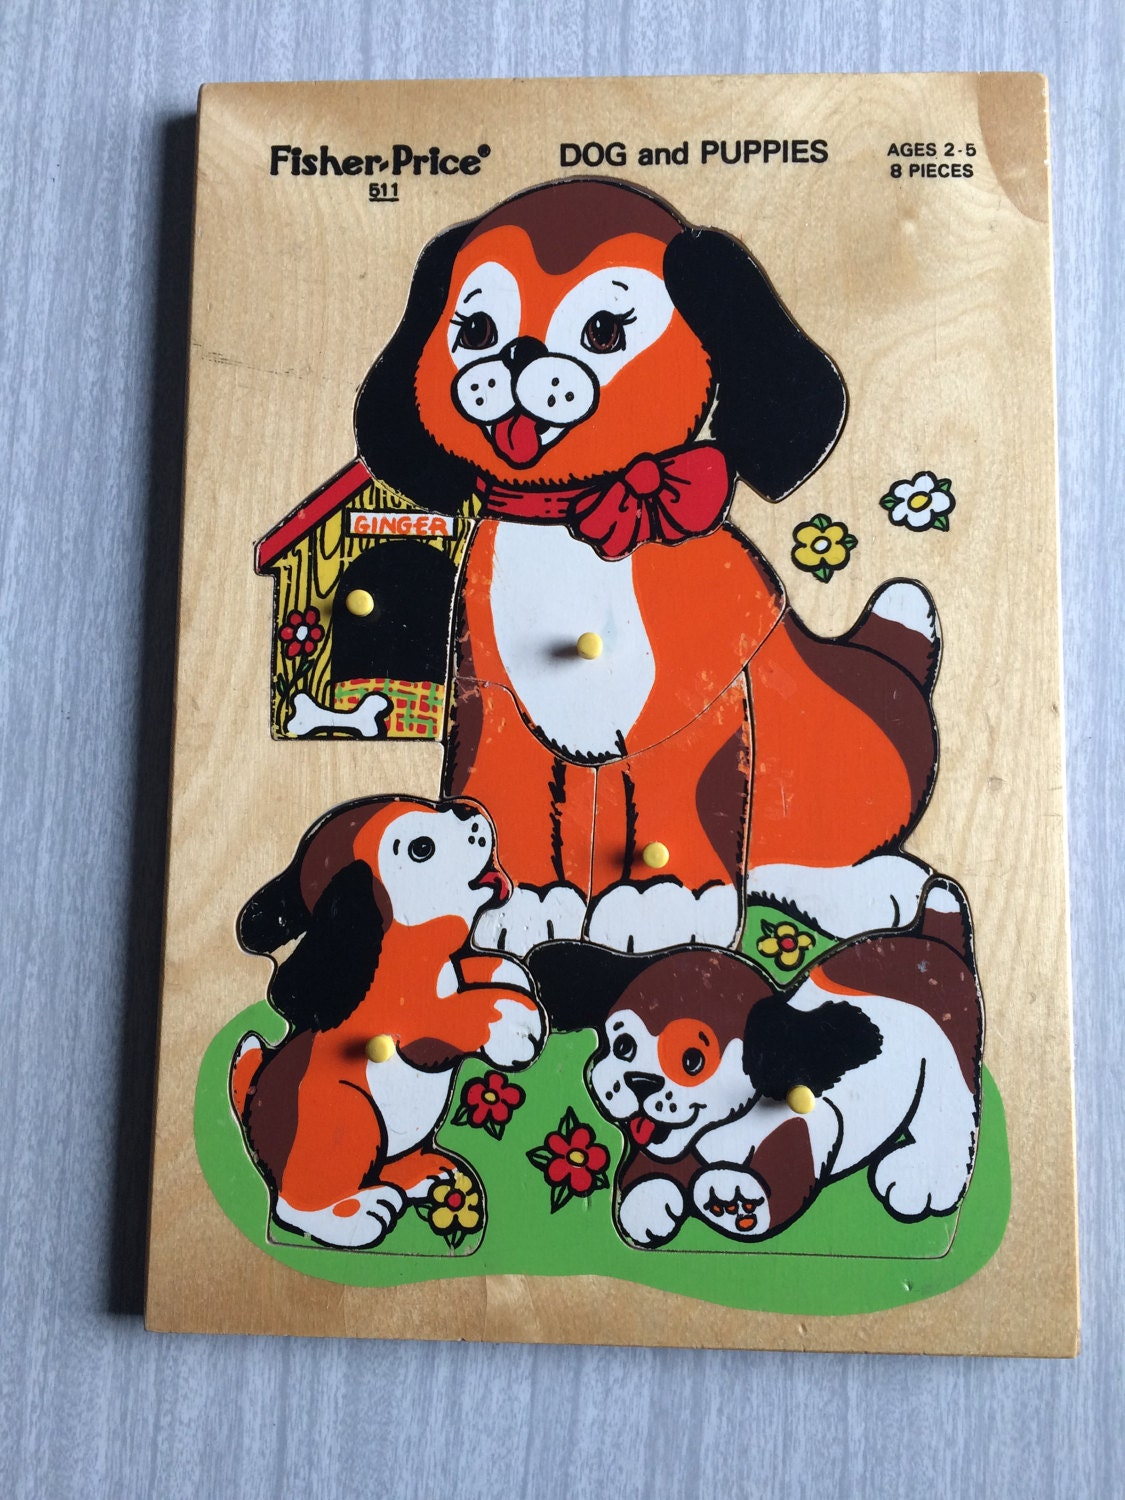 Fisher Price Dog and Puppies Wooden Inset Puzzle